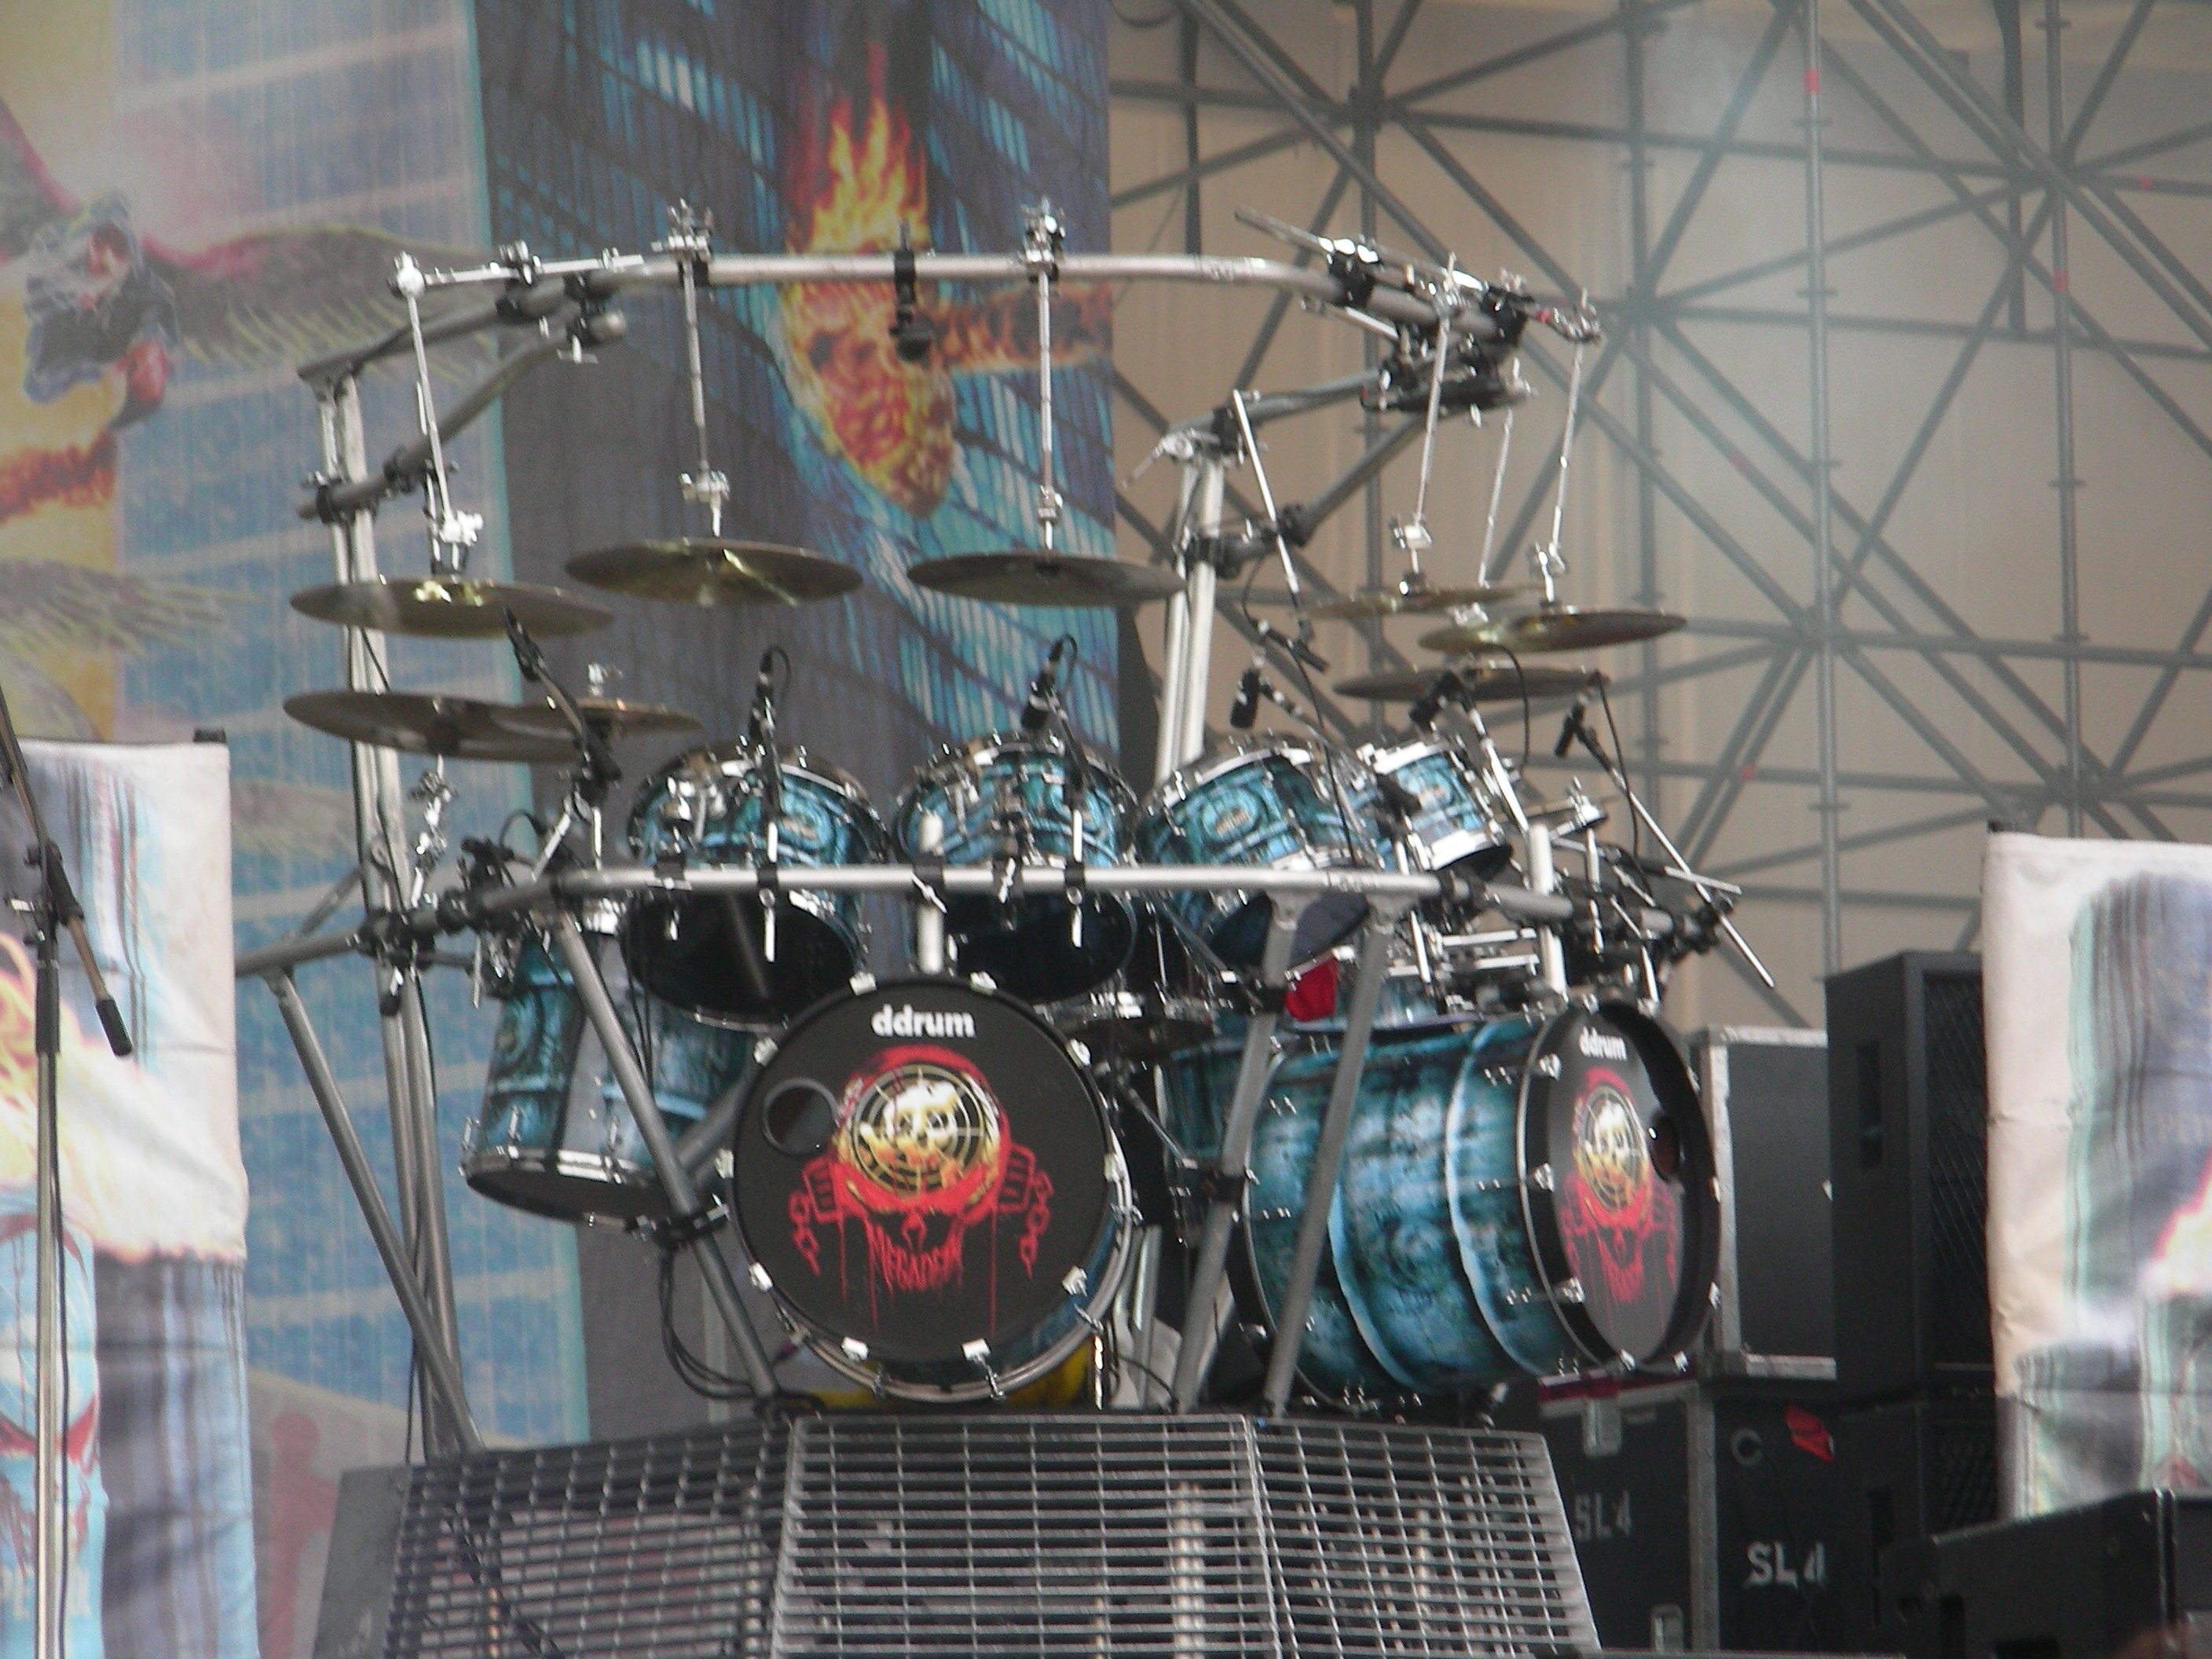 Cymbals Mounted on a Drum Rack